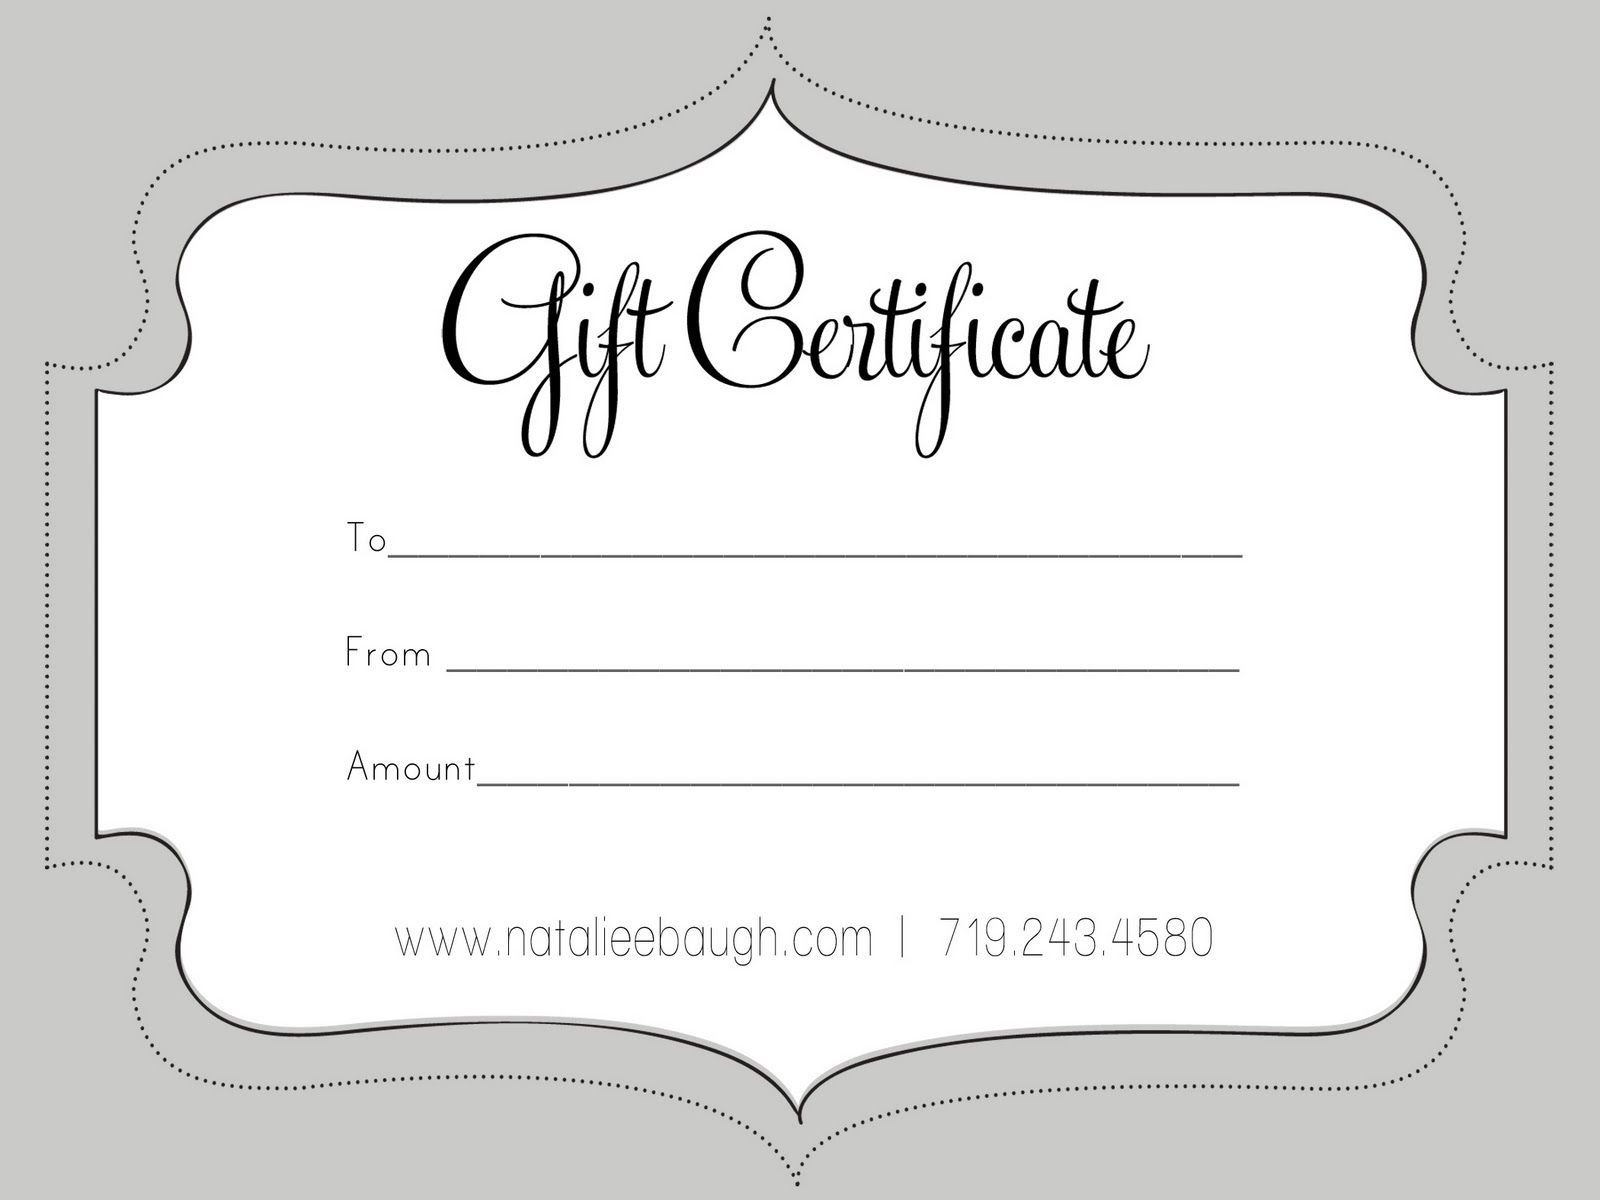 A Cute Looking Gift Certificate  S P A  Gift Certificate Template For Microsoft Gift Certificate Template Free Word